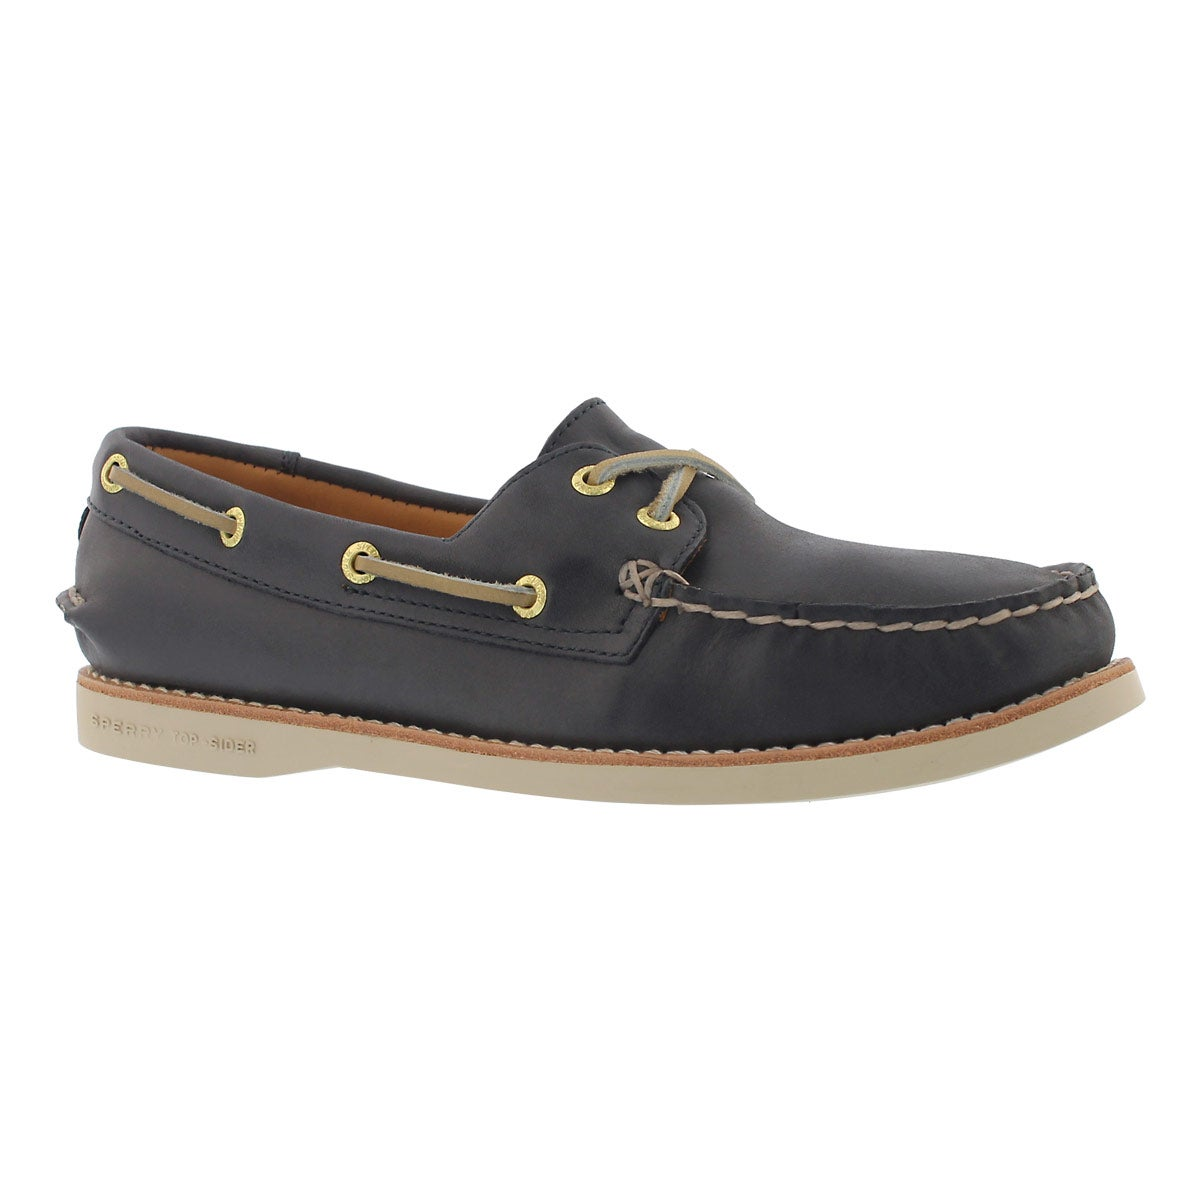 GOLD CUP A/O navy boat shoes